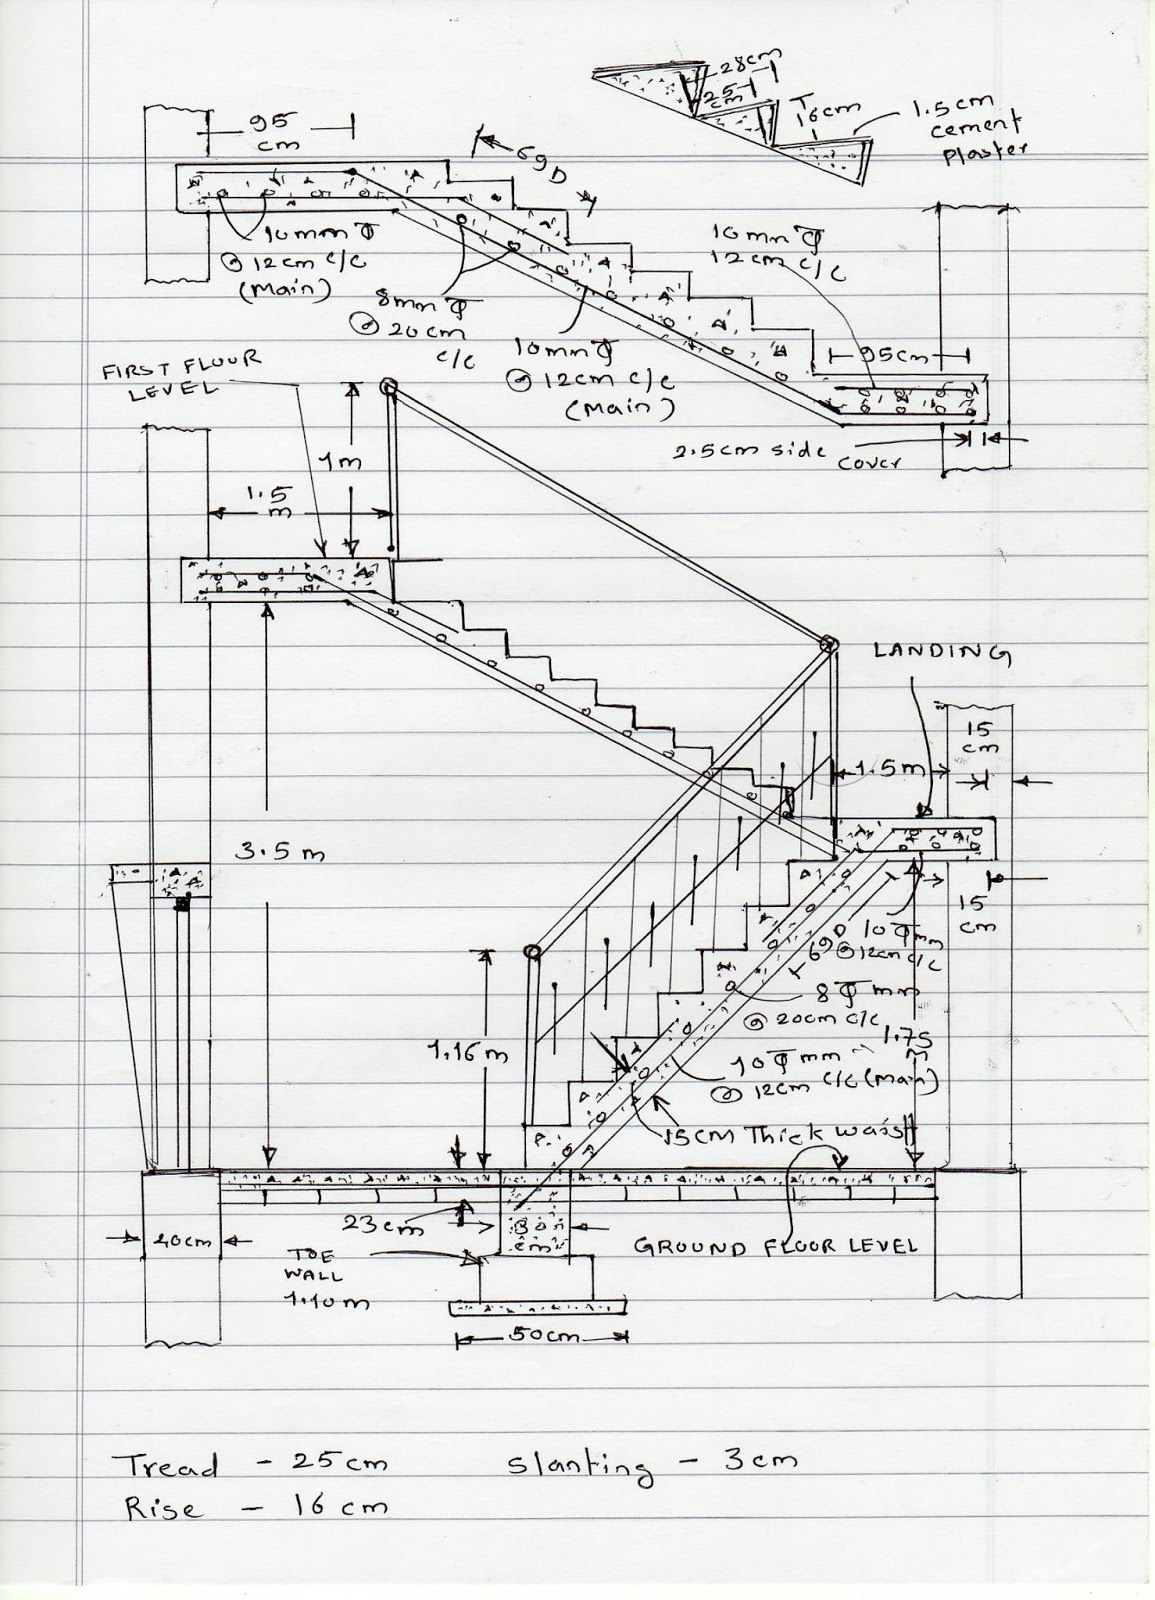 Civil At Work How To Calculate Staircase Concrete Quantity Staircase Design Modern Elevator Design Concrete Staircase